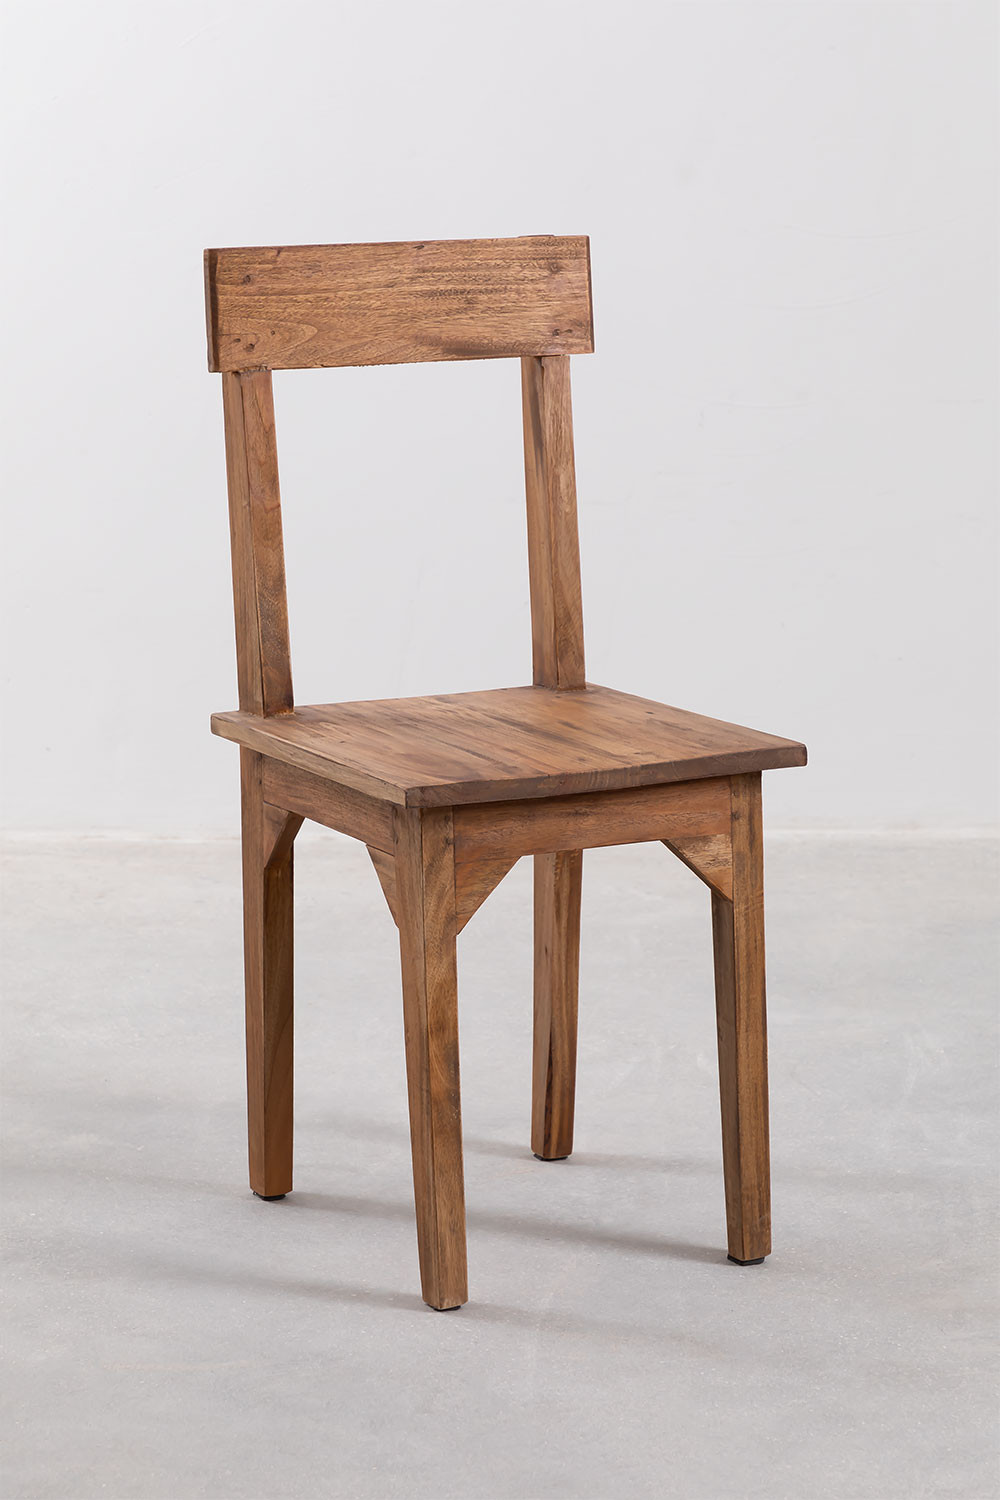 Vignet Recycled Wood Chair, gallery image 1